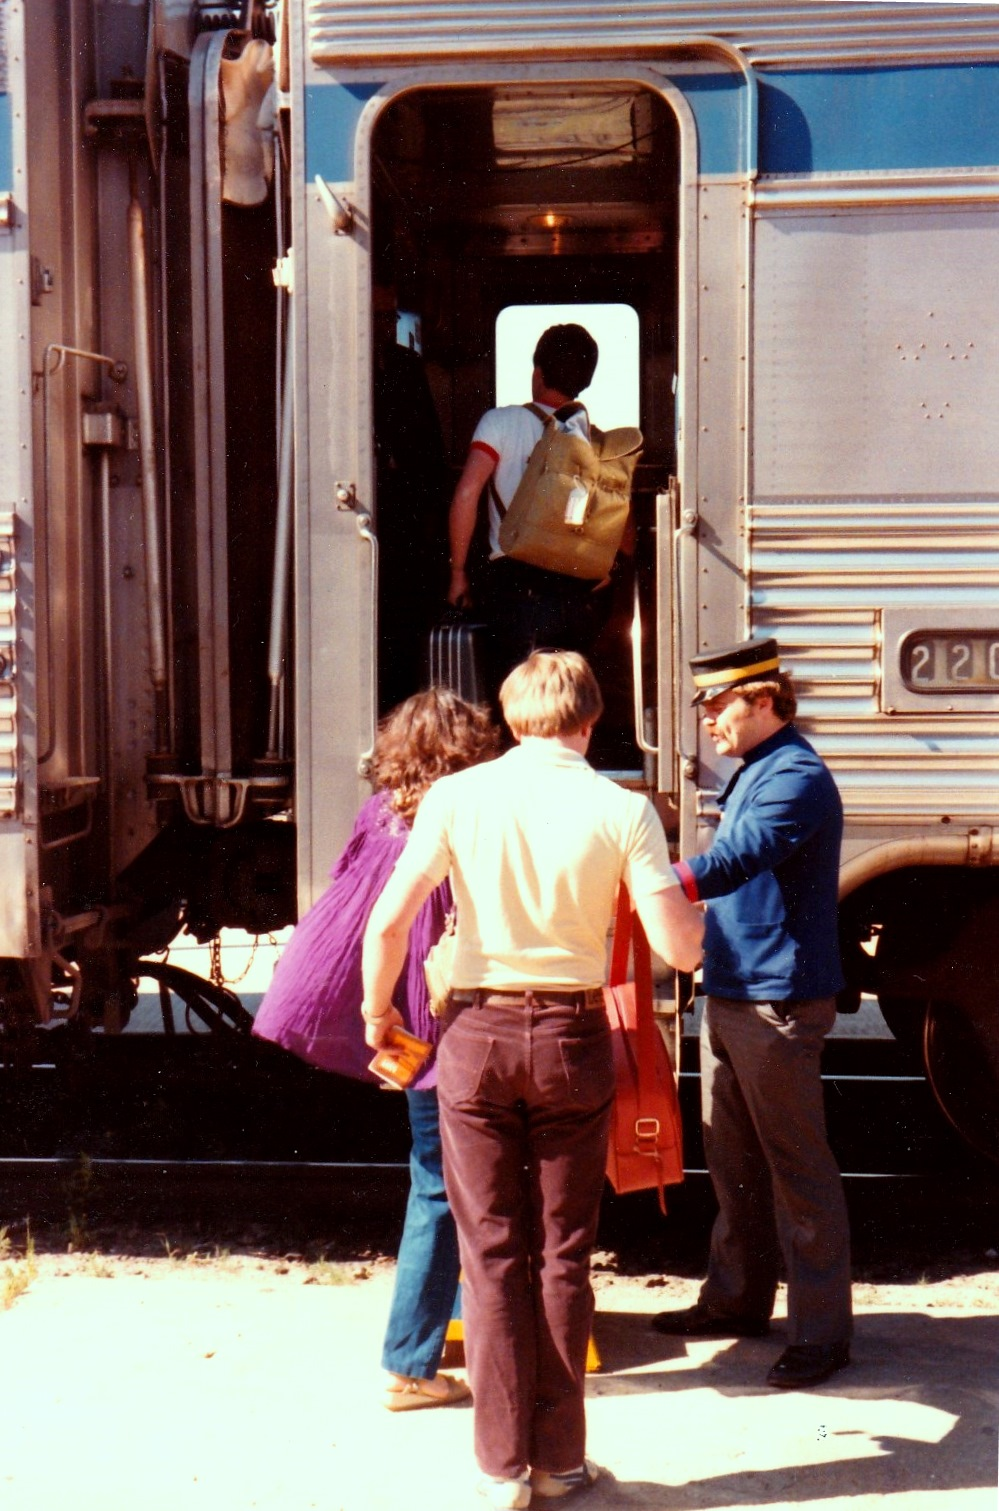 Boarding No 2 in June, 1982